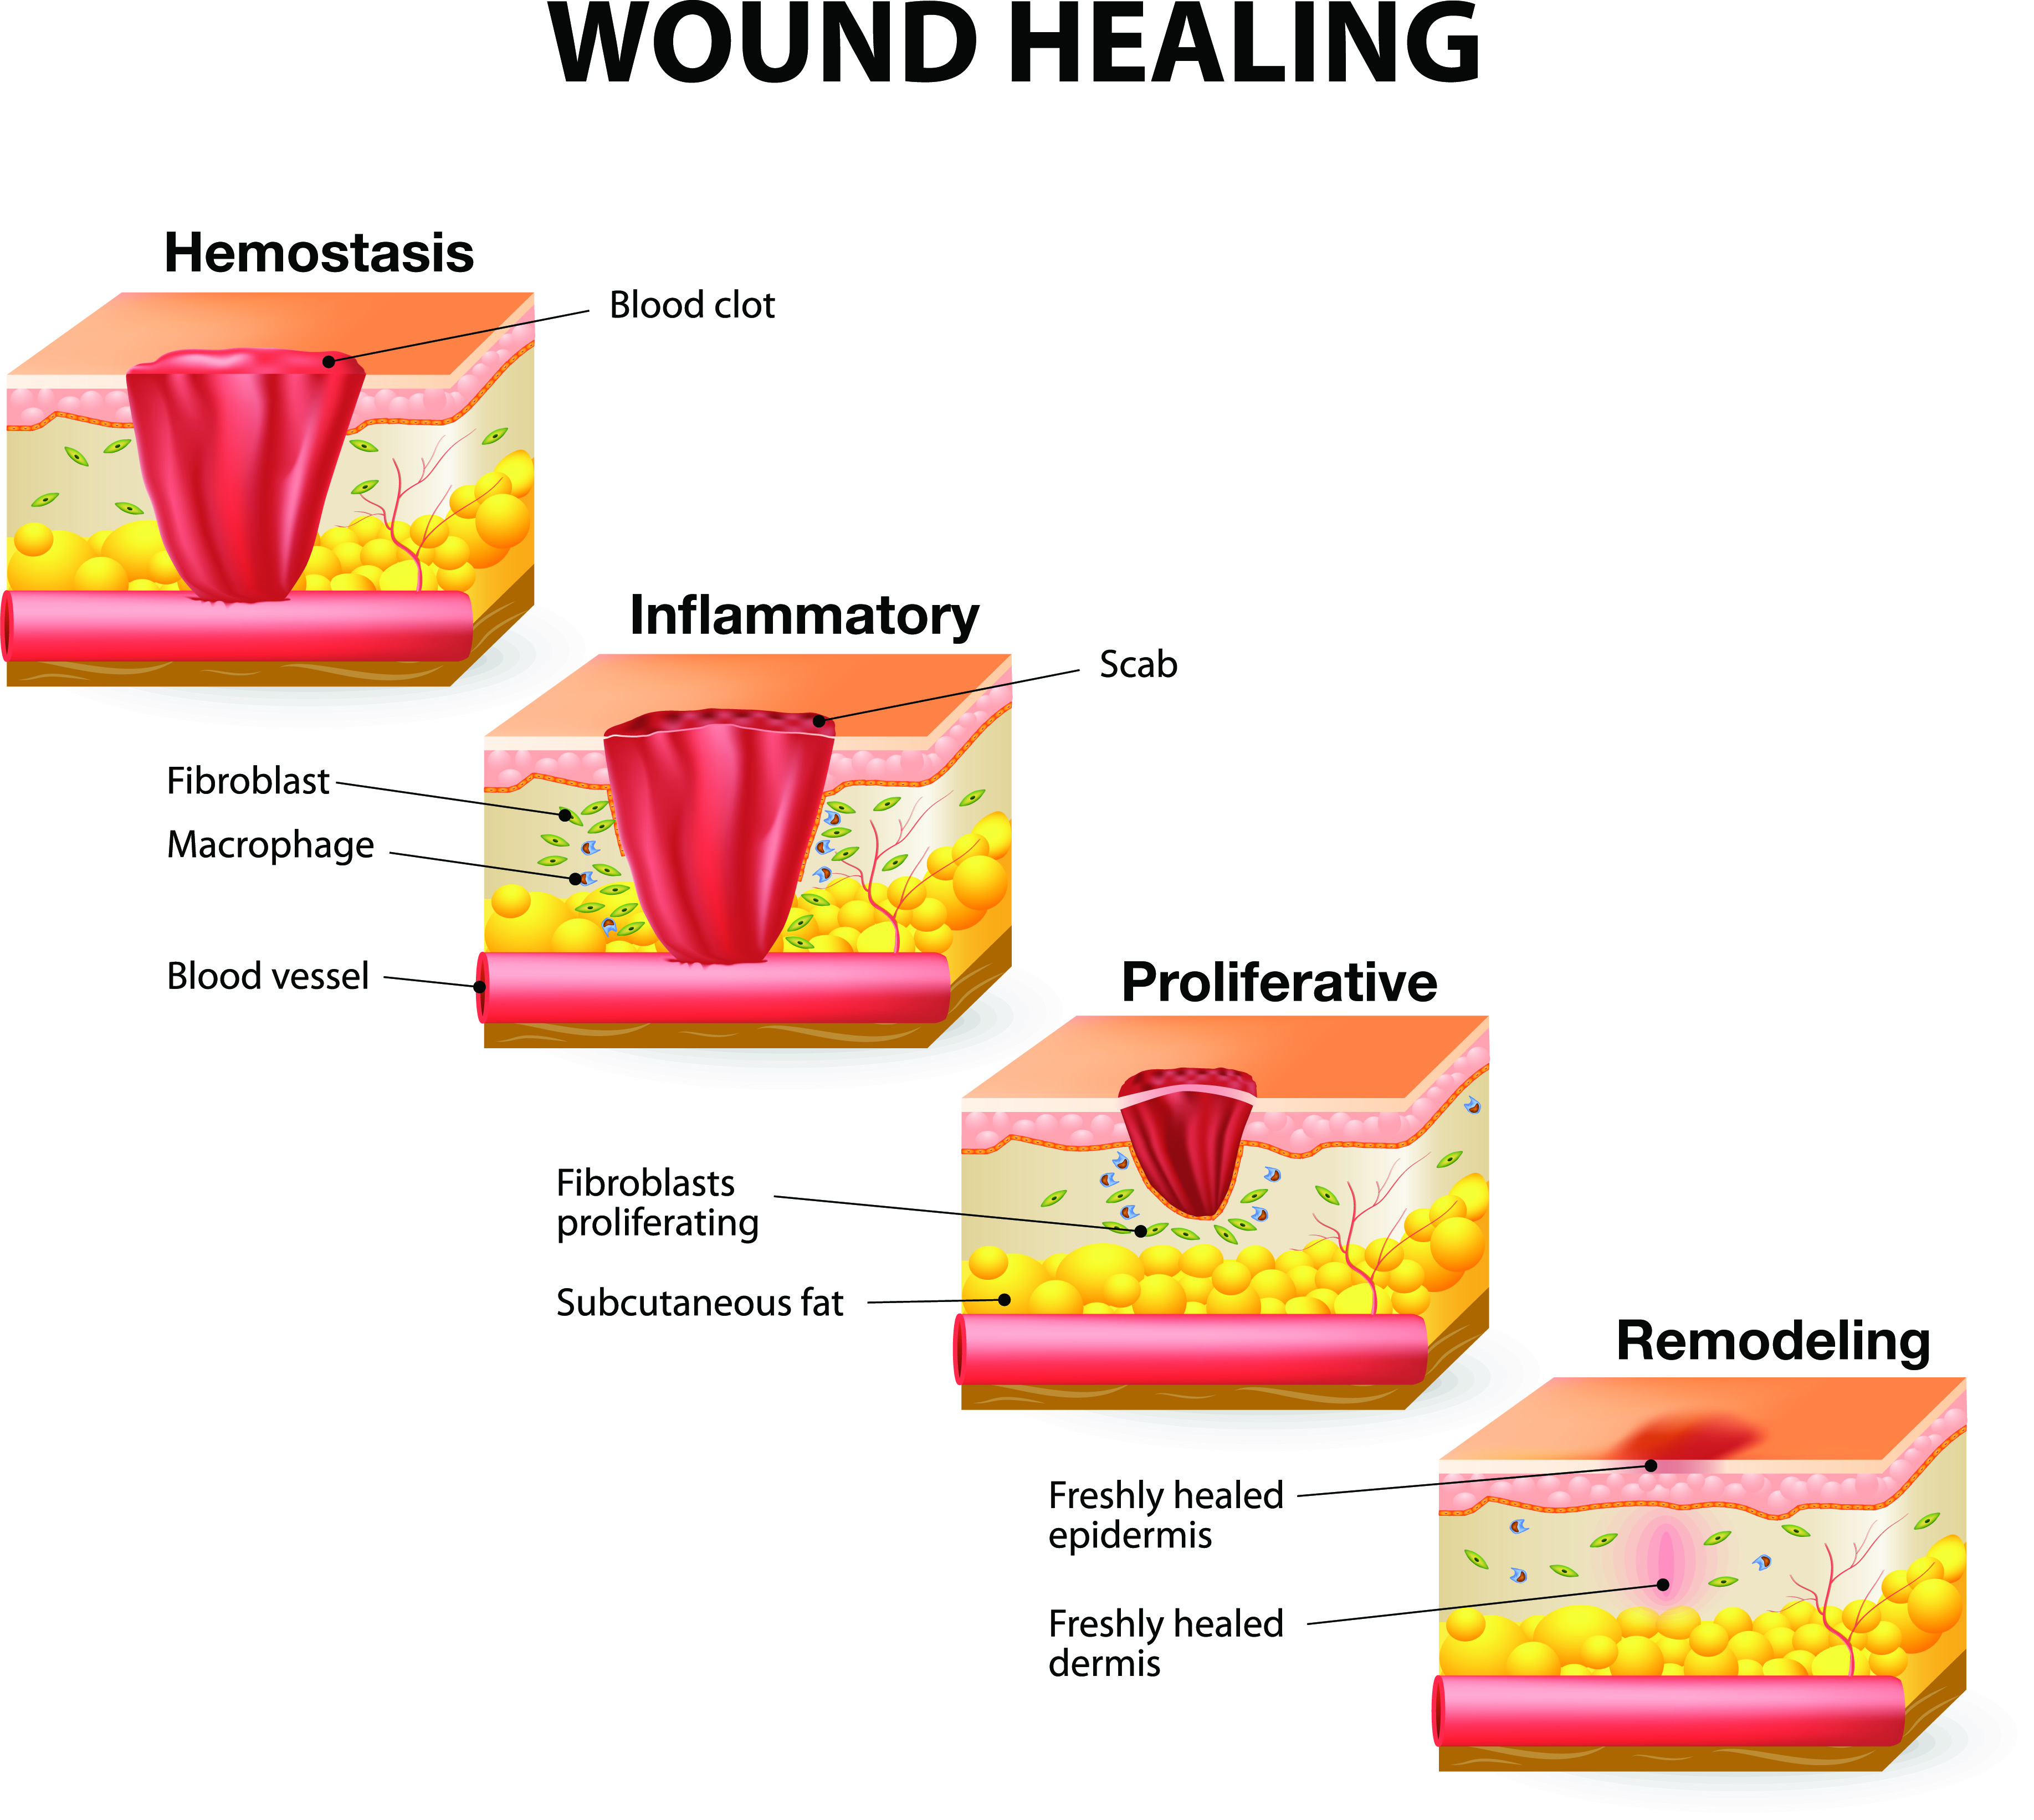 How Wounds Heal: The 4 Main Phases of Wound Healing   Shield HealthCare